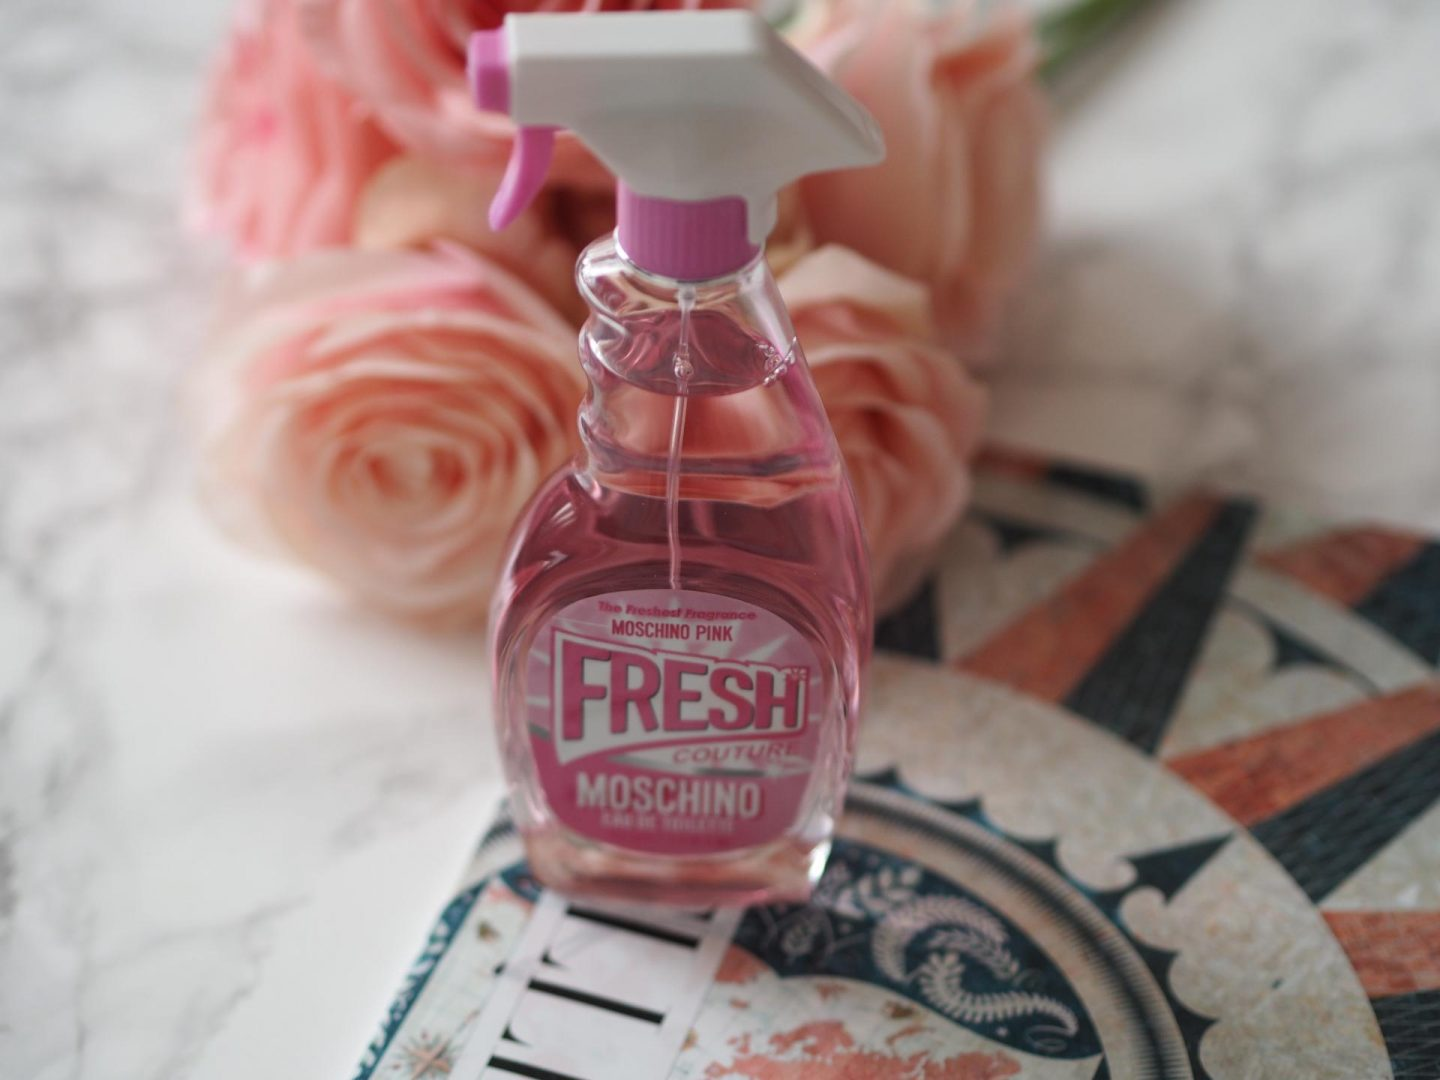 Fragrances For Women - Product: Moschino Fresh Pink